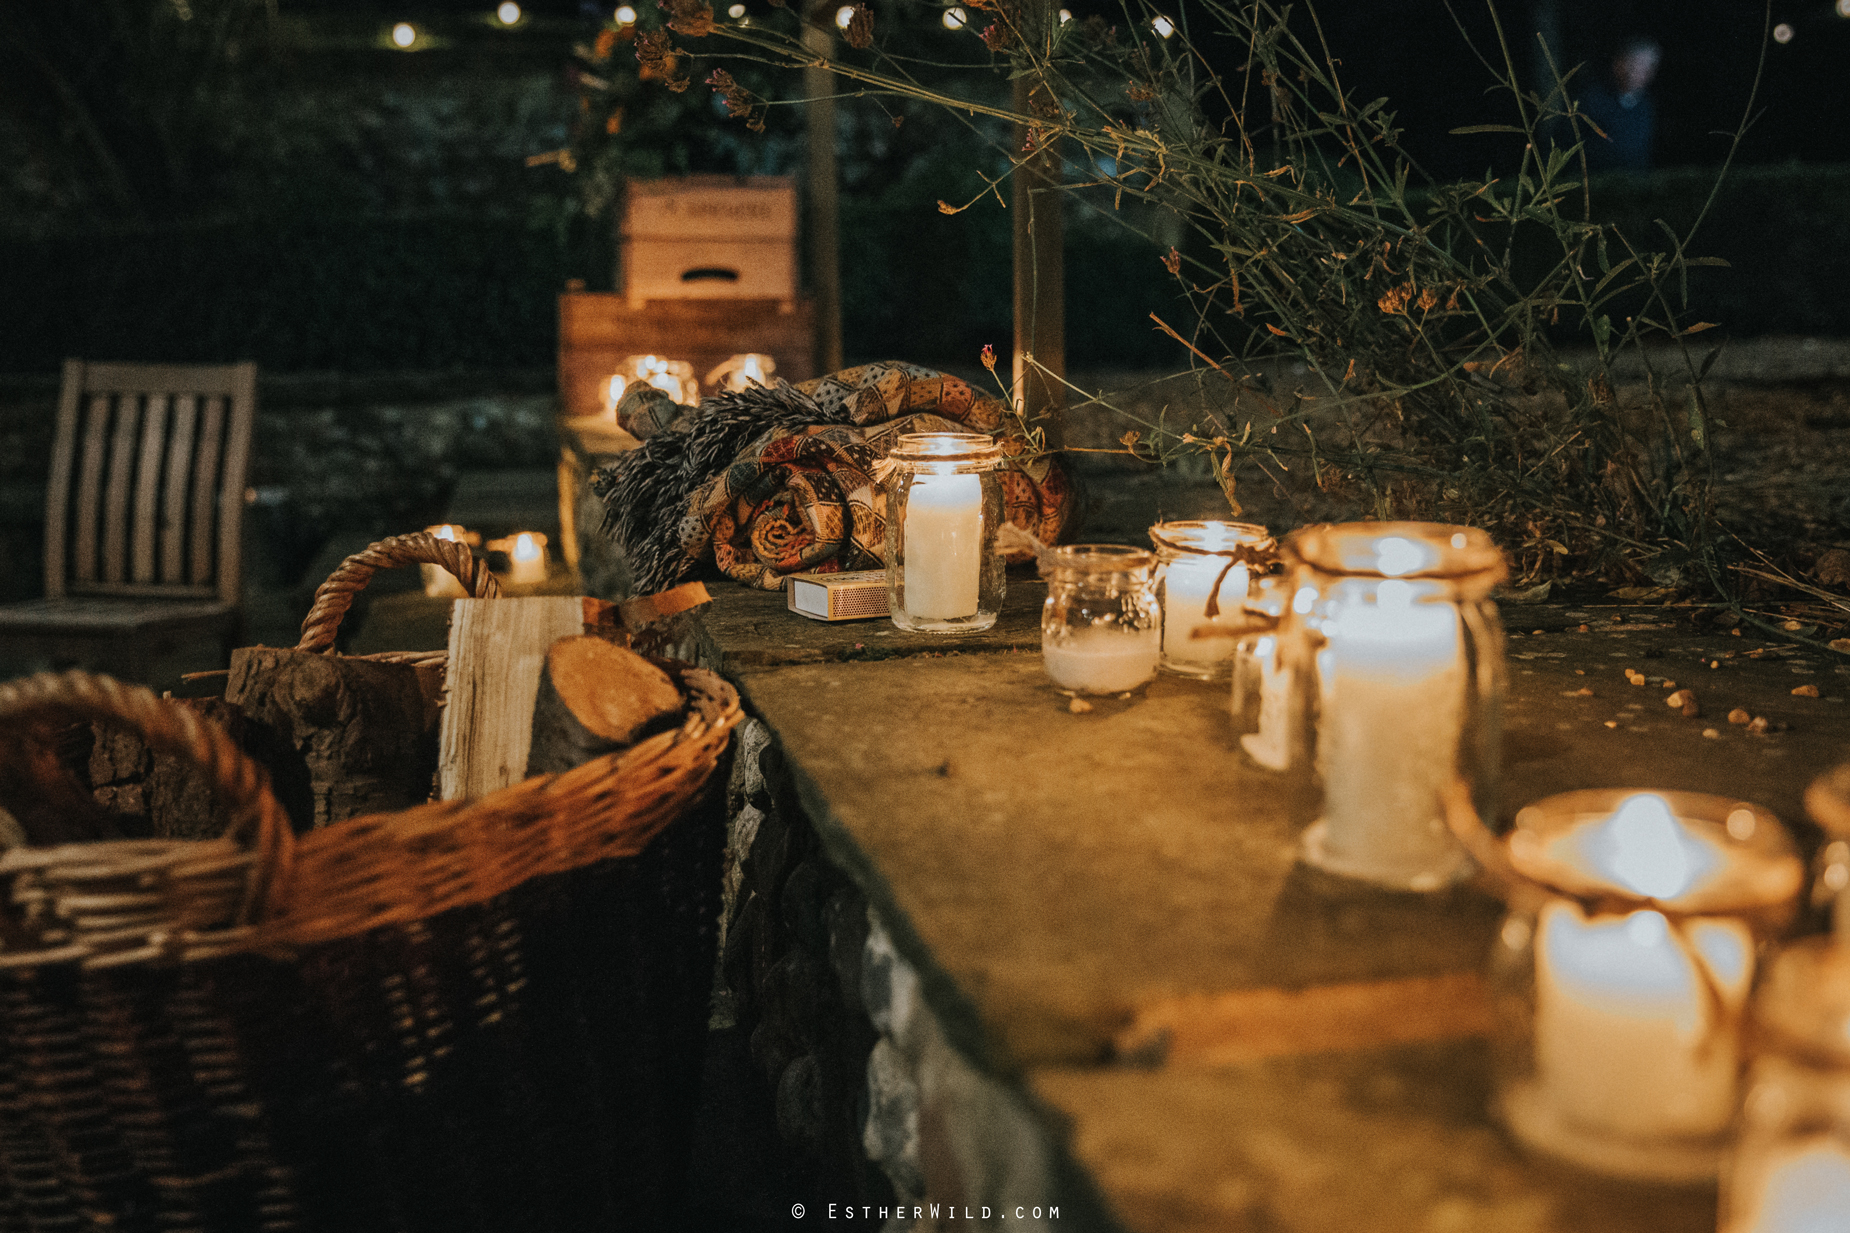 Wedding_Photographer_Chaucer_Barn_Holt_Norfolk_Country_Rustic_Venue_Copyright_Esther_Wild_IMG_2042.jpg